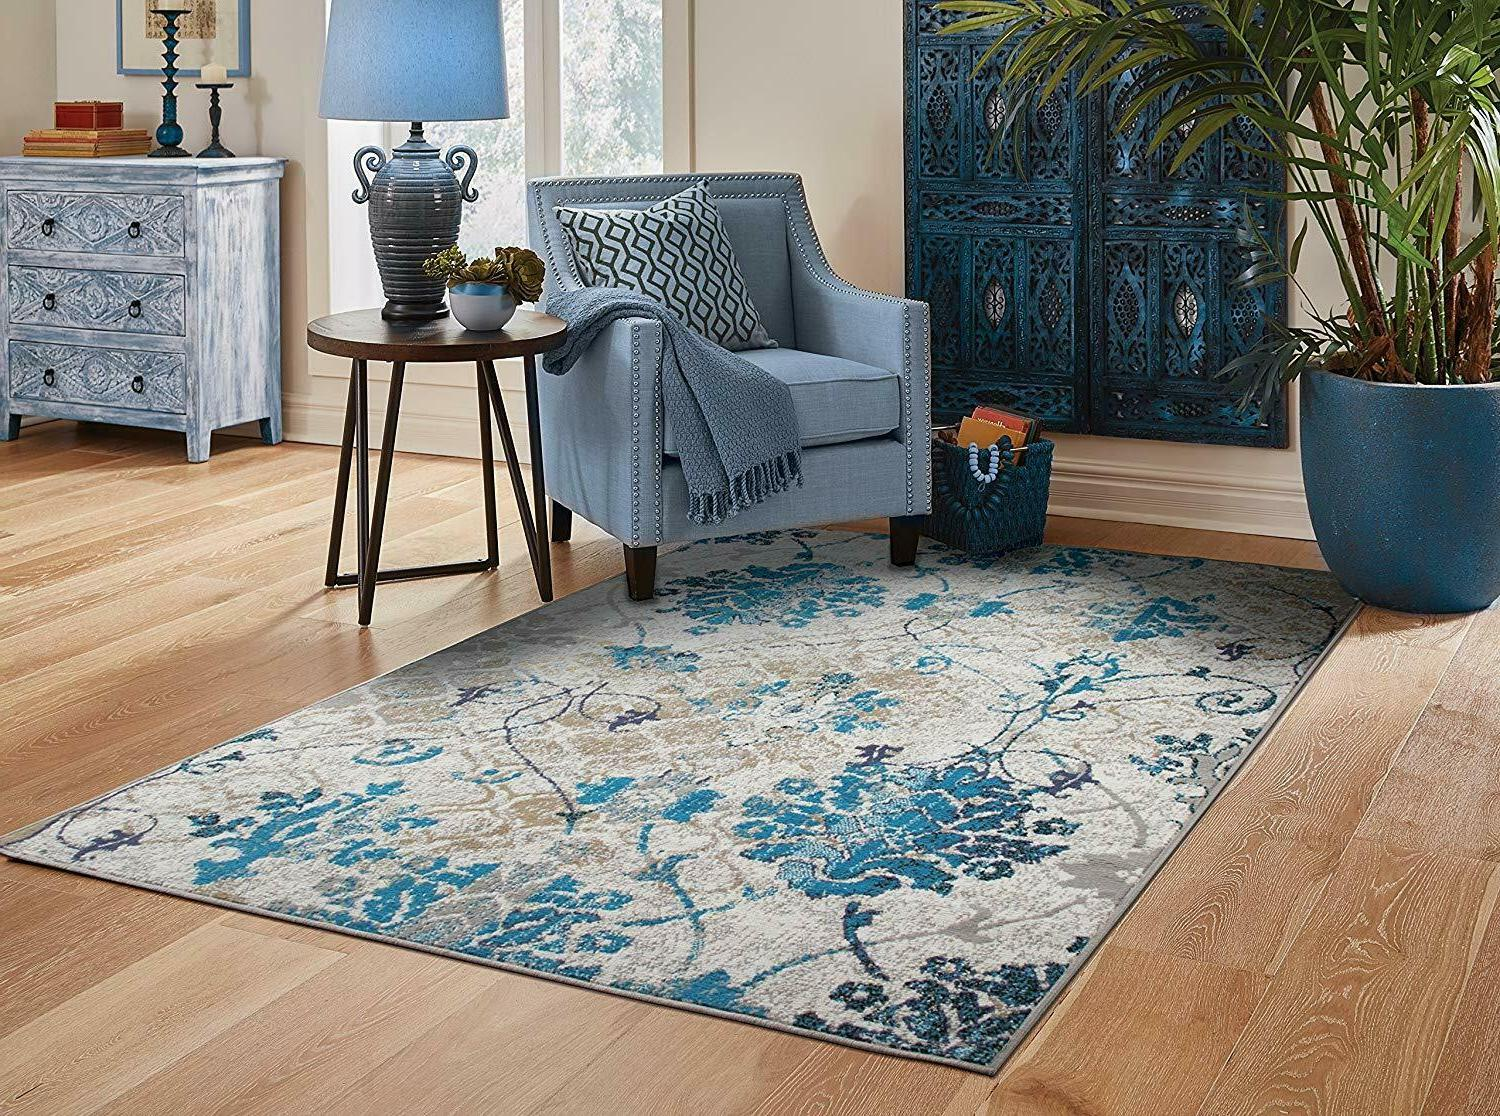 It's likely you and your guests will spend countless hours in this room, discussing and entertaining. Modern Area Rugs 8x10 Contemporary Blue Living Room